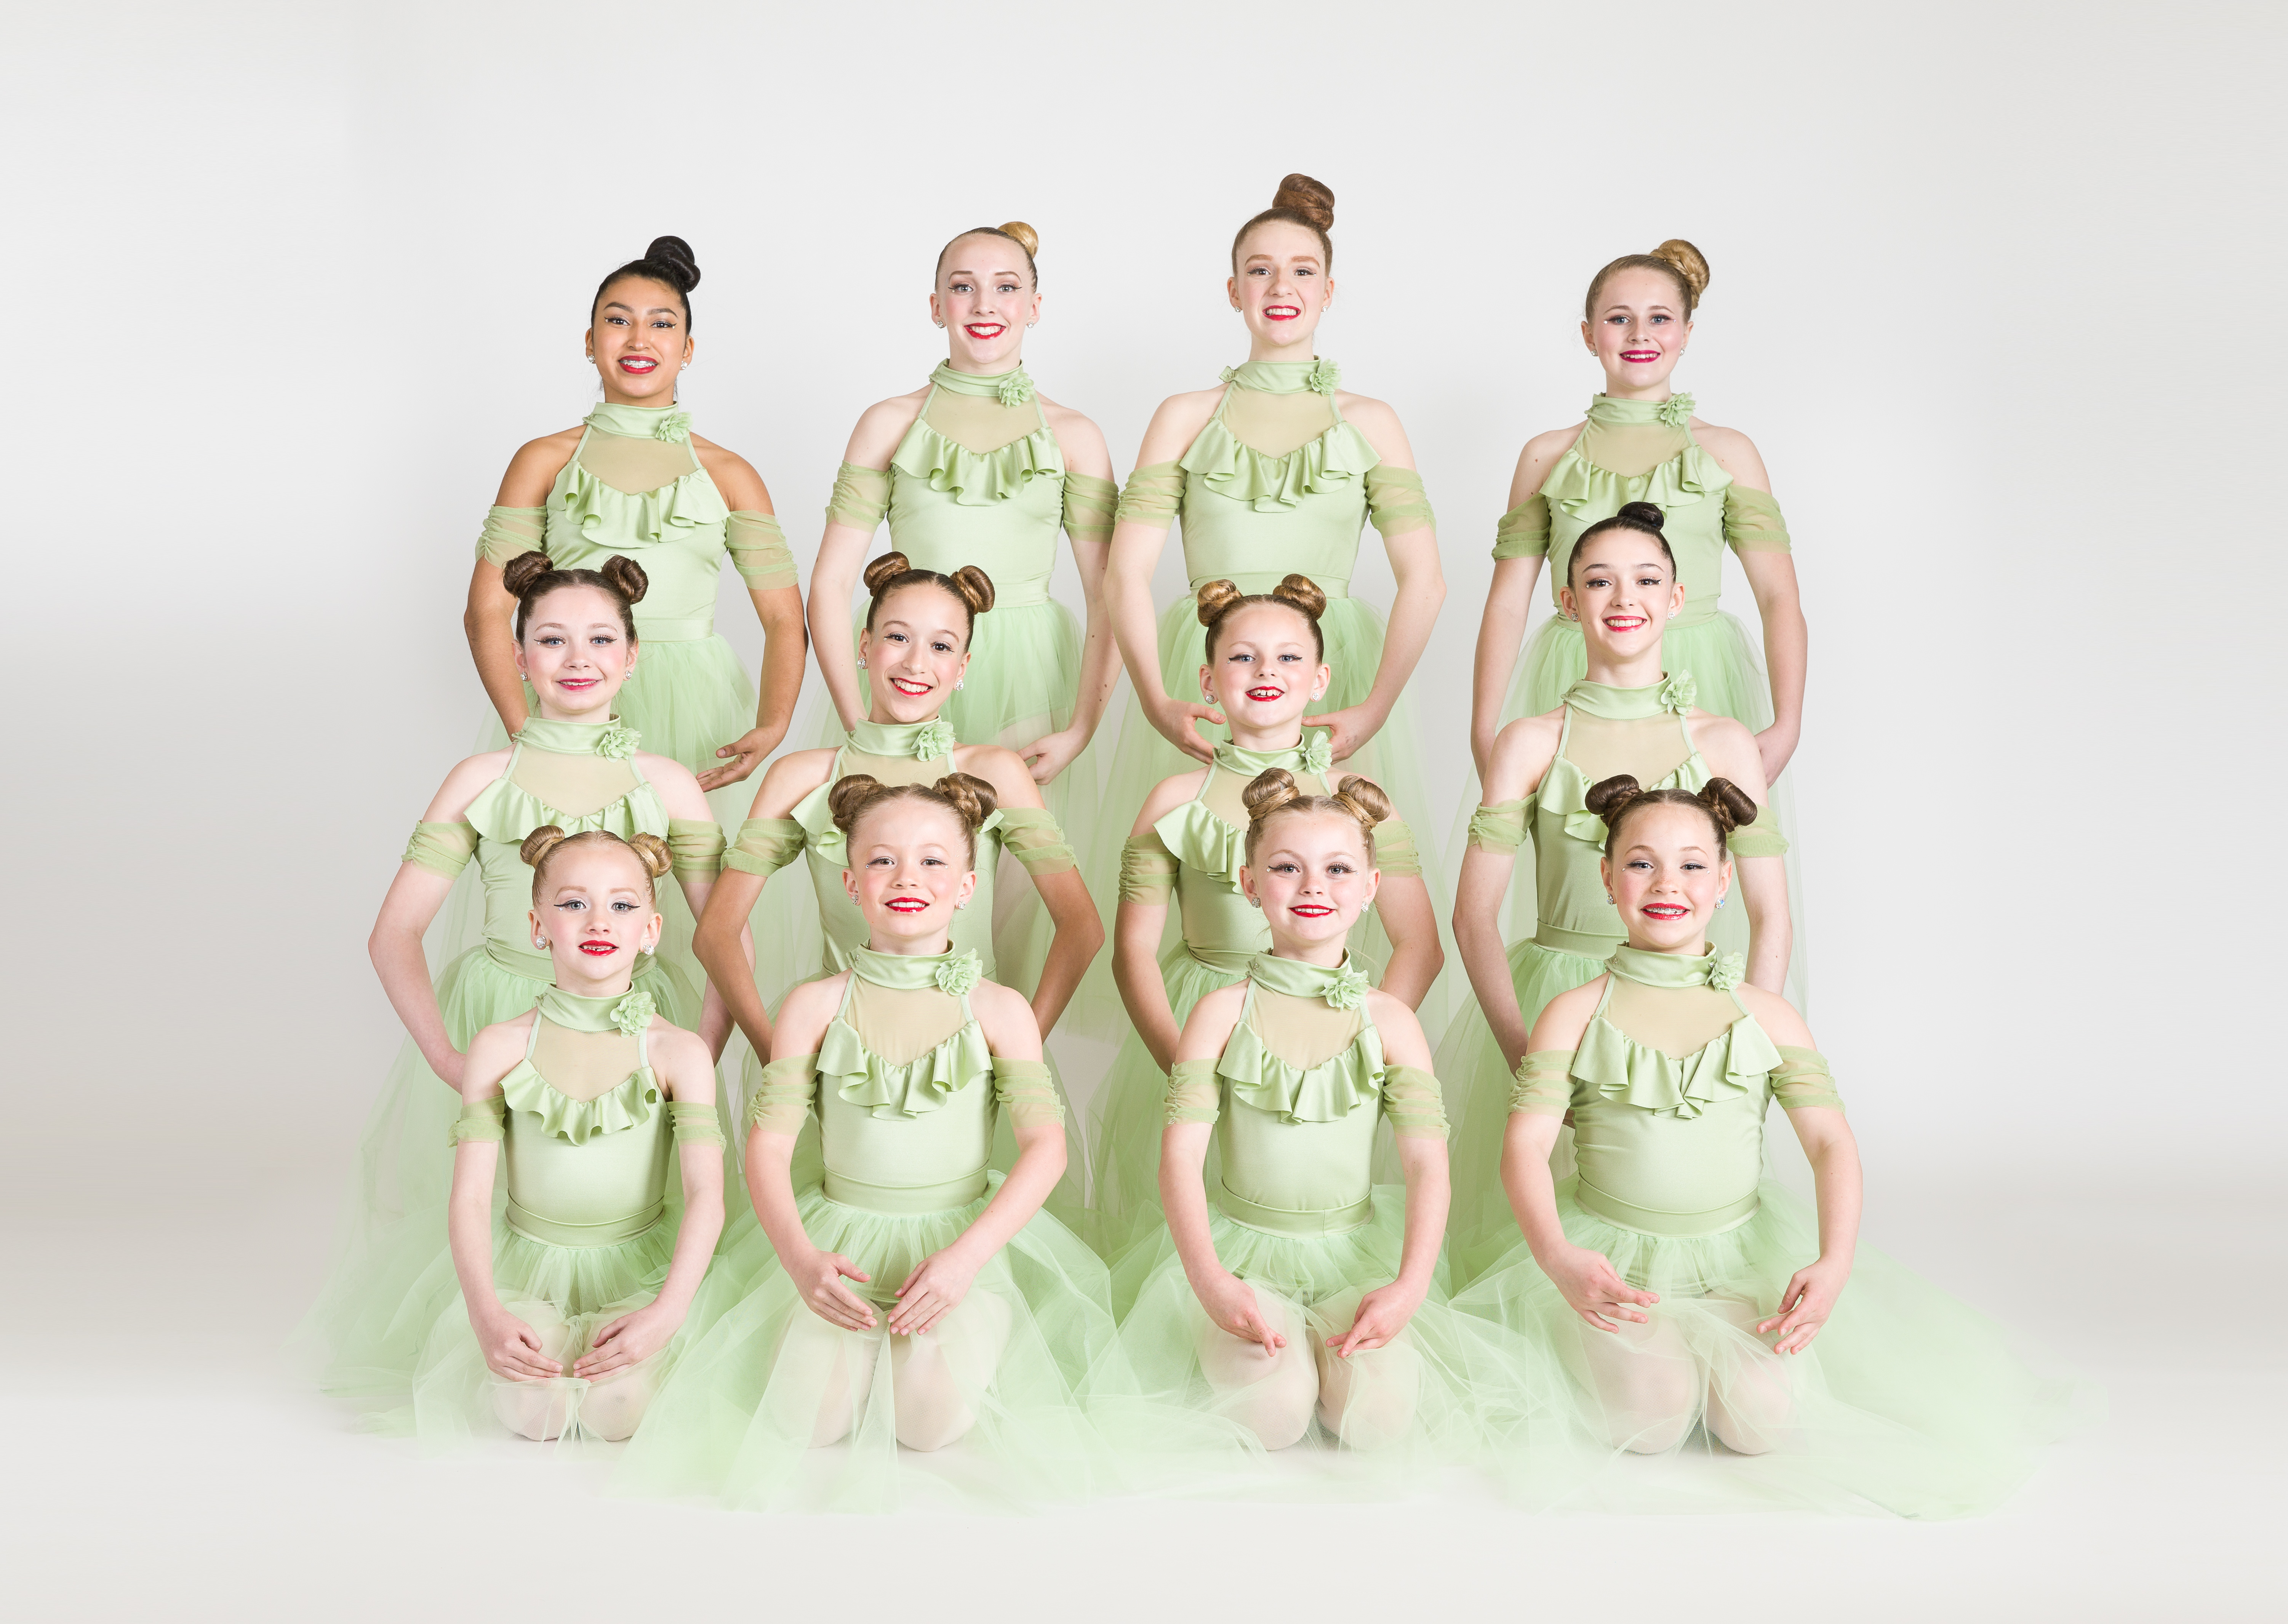 2019-4-13-the-dance-spot-recital3295-Edi